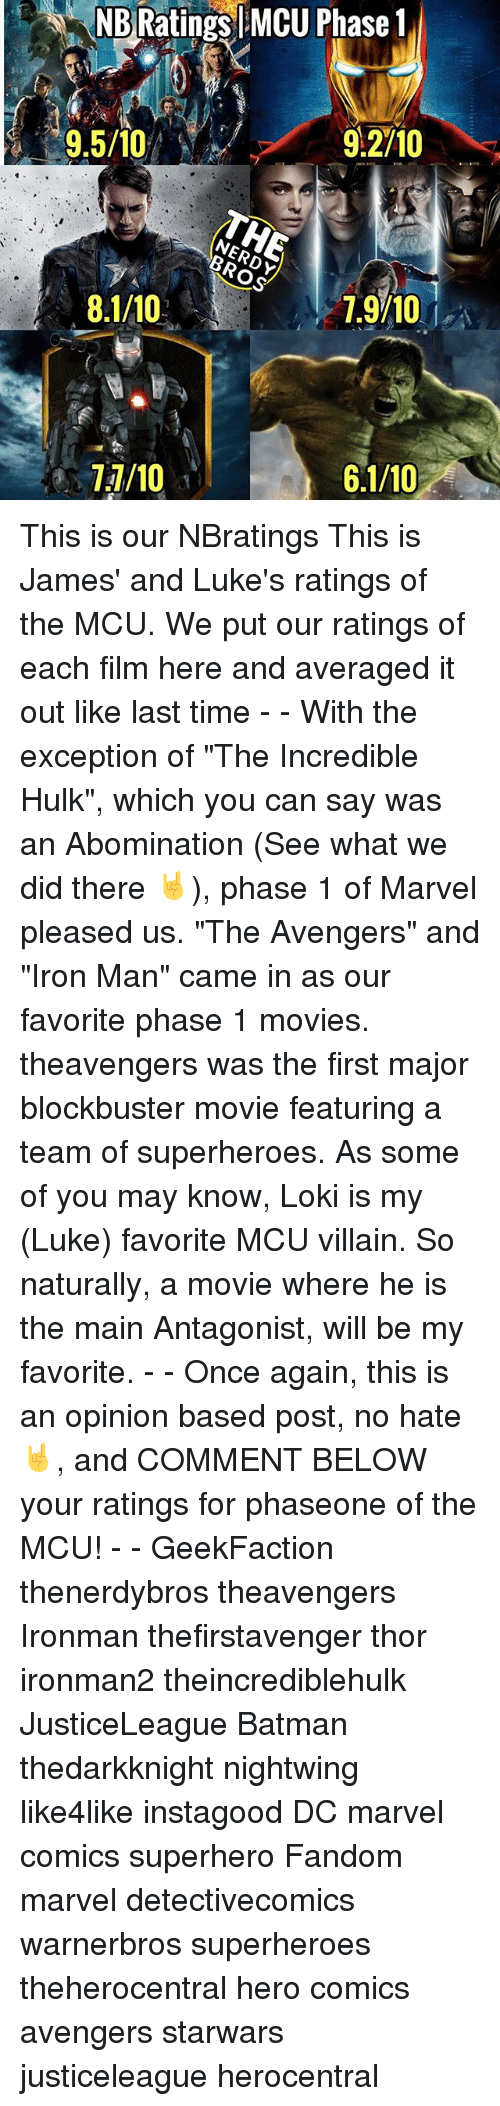 """Lokie: NB  Ratings  MCU  Phase  1  9,5/10O  9.5/10  9.2/10  I 7.9710  1.9/10  1,9/10 This is our NBratings This is James' and Luke's ratings of the MCU. We put our ratings of each film here and averaged it out like last time - - With the exception of """"The Incredible Hulk"""", which you can say was an Abomination (See what we did there 🤘), phase 1 of Marvel pleased us. """"The Avengers"""" and """"Iron Man"""" came in as our favorite phase 1 movies. theavengers was the first major blockbuster movie featuring a team of superheroes. As some of you may know, Loki is my (Luke) favorite MCU villain. So naturally, a movie where he is the main Antagonist, will be my favorite. - - Once again, this is an opinion based post, no hate 🤘, and COMMENT BELOW your ratings for phaseone of the MCU! - - GeekFaction thenerdybros theavengers Ironman thefirstavenger thor ironman2 theincrediblehulk JusticeLeague Batman thedarkknight nightwing like4like instagood DC marvel comics superhero Fandom marvel detectivecomics warnerbros superheroes theherocentral hero comics avengers starwars justiceleague herocentral"""